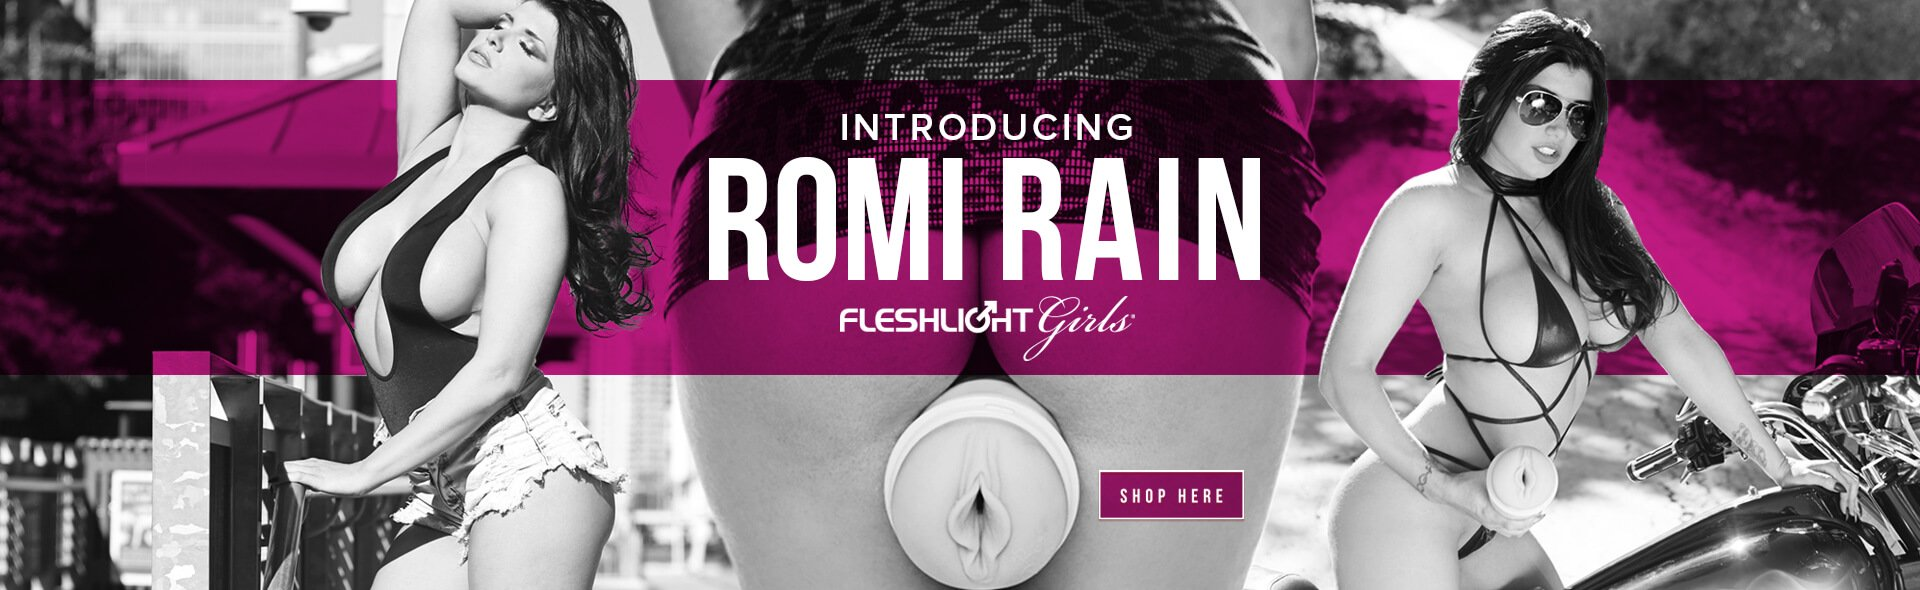 New Fleshlight Freaks and Romi Rain Fleshlight Image